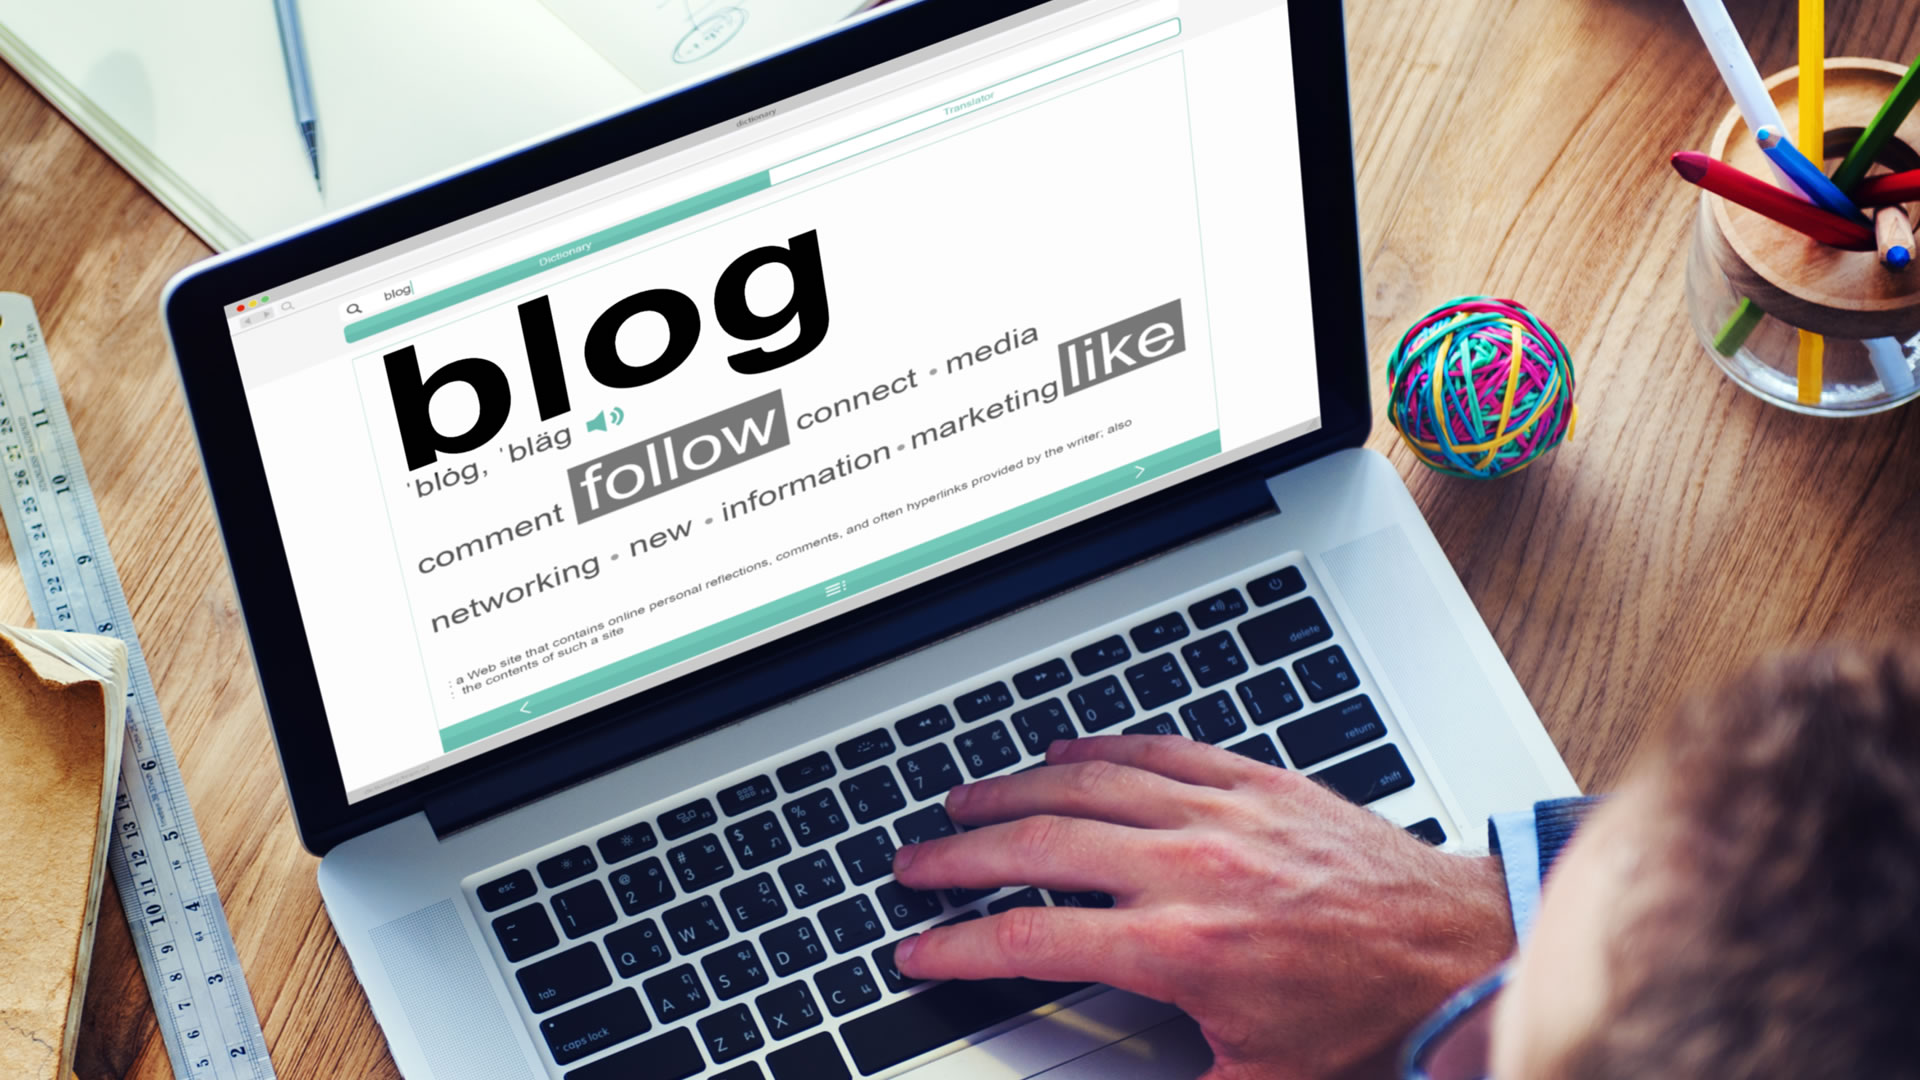 Our Blog!